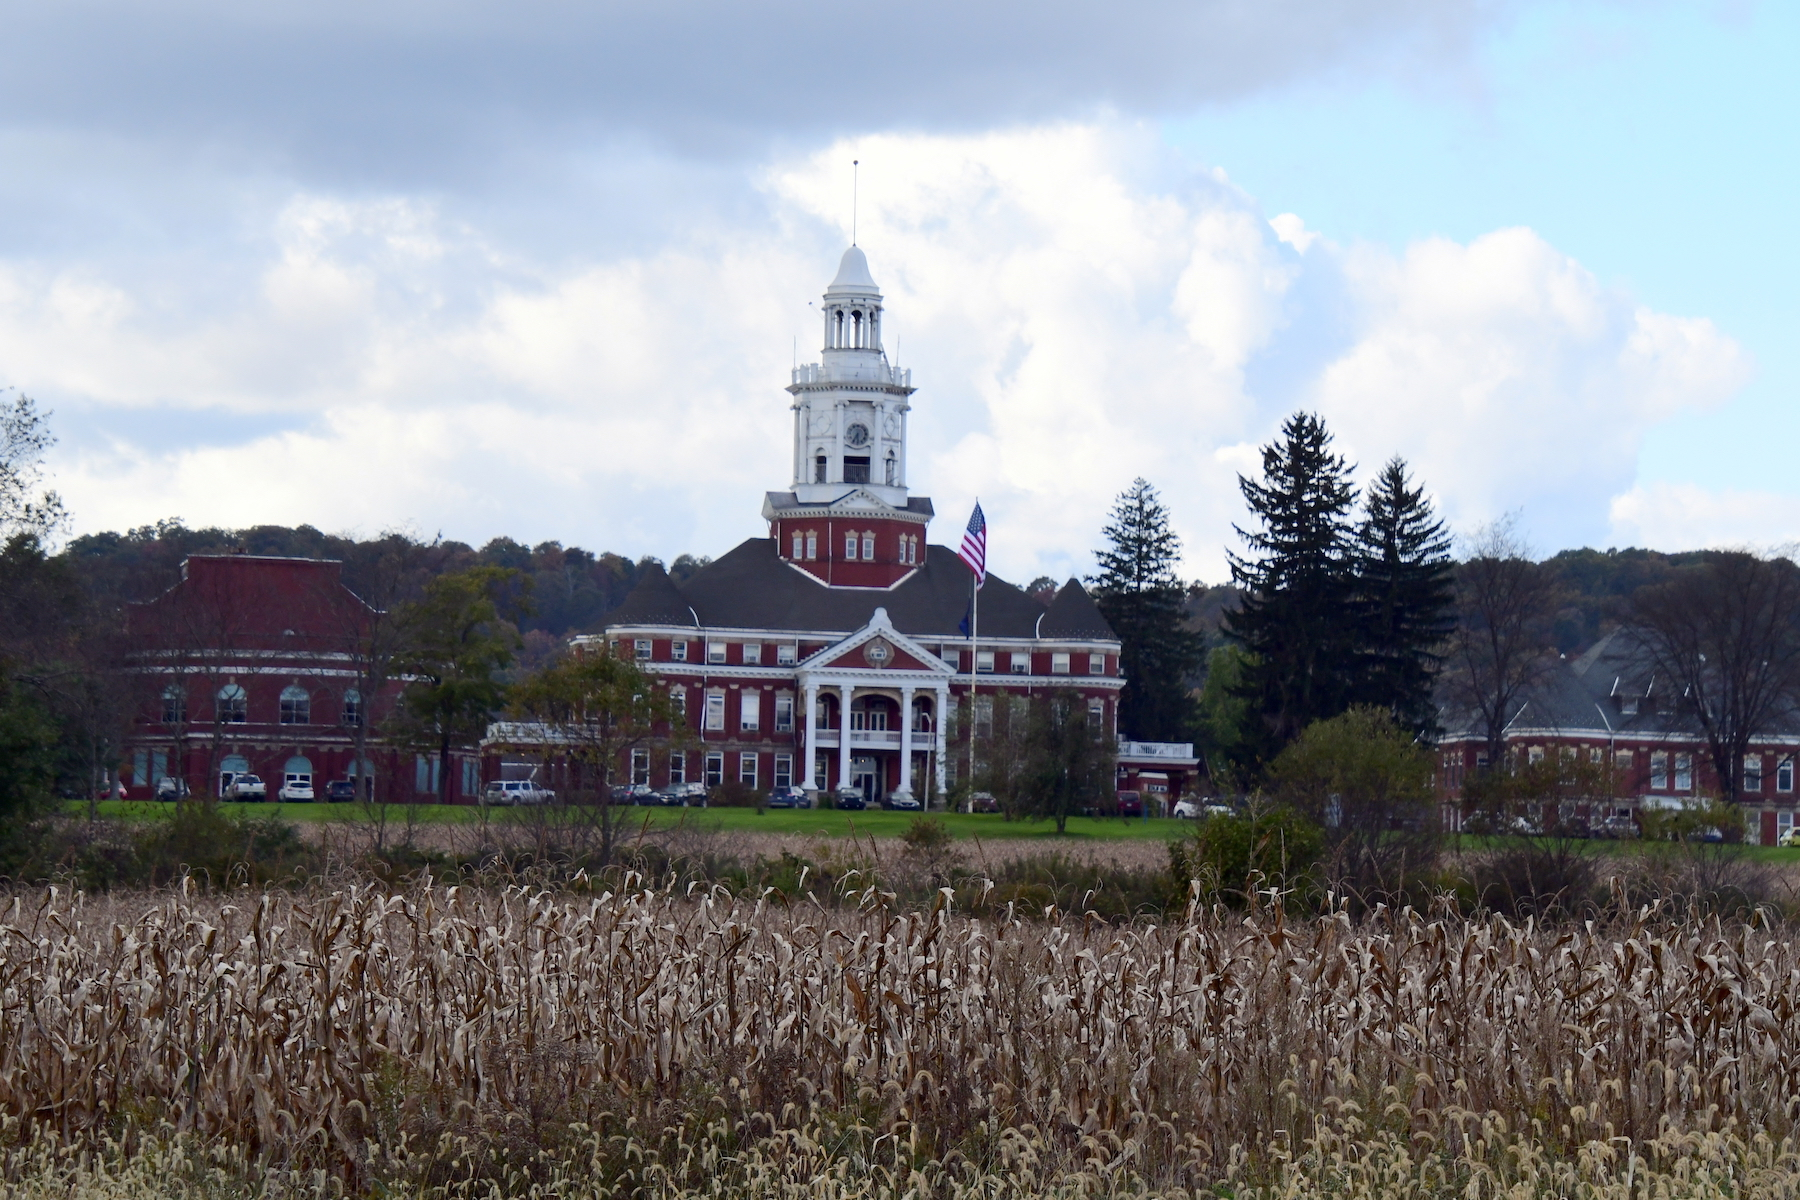 Field of crops in front of large institutional building at Polk State Center with surrounding buildings on summer day.